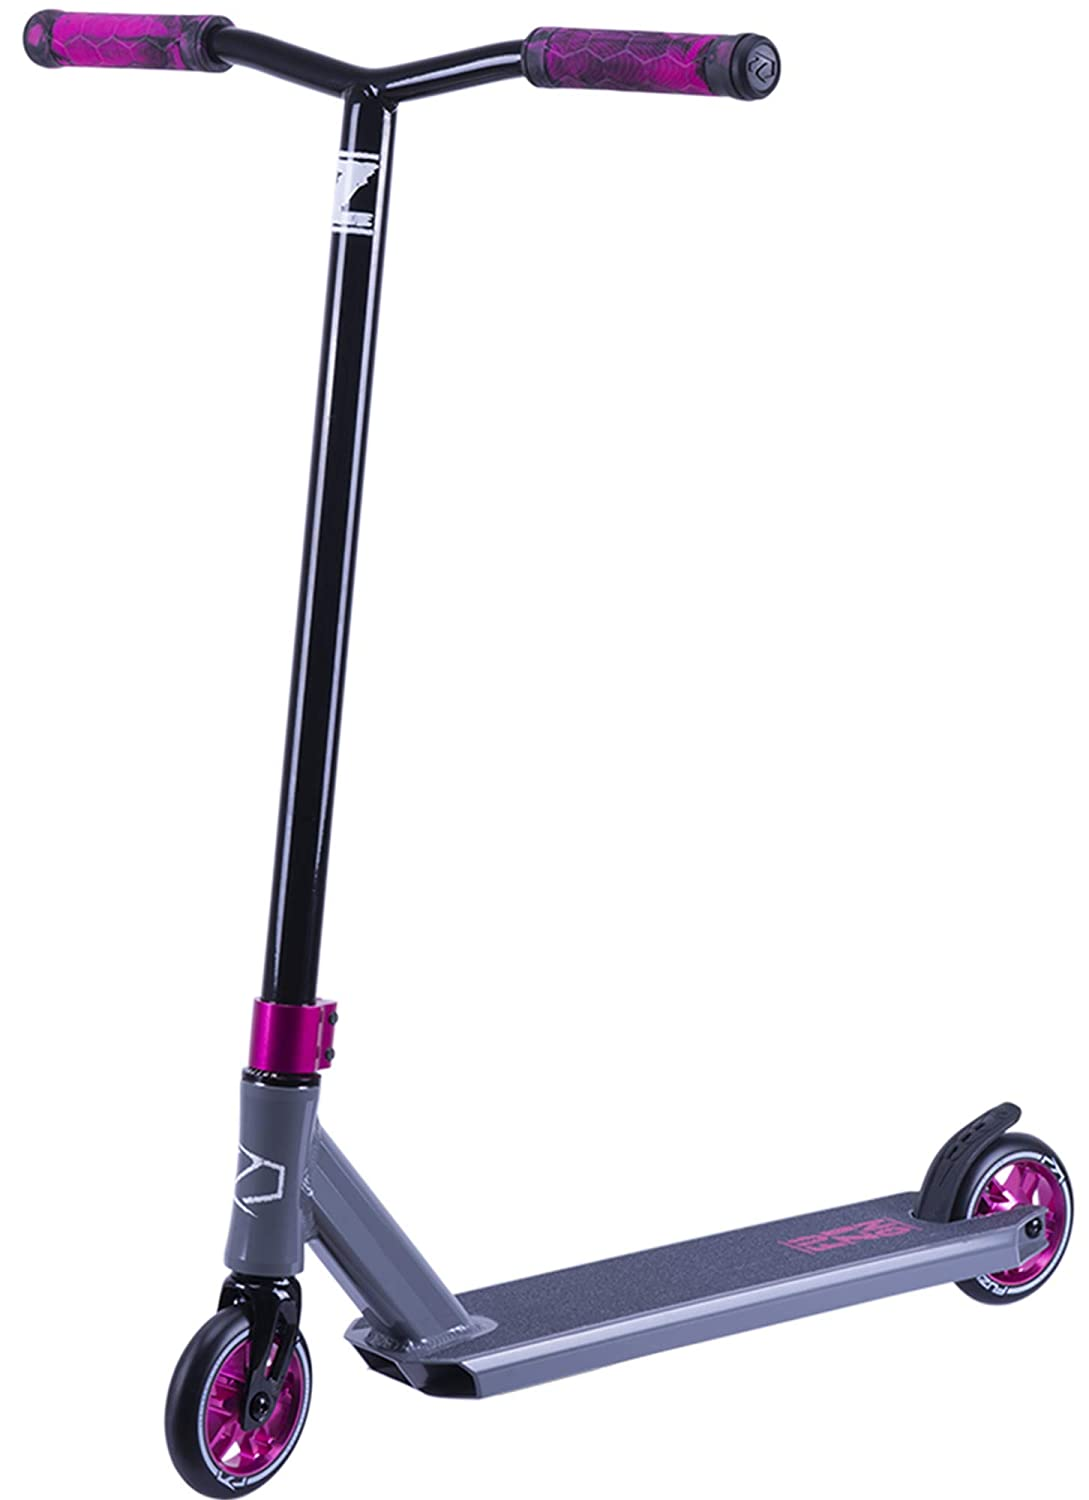 Amazon.com: Fuzion Z250 Pro Scooters - Patinete de carraca ...